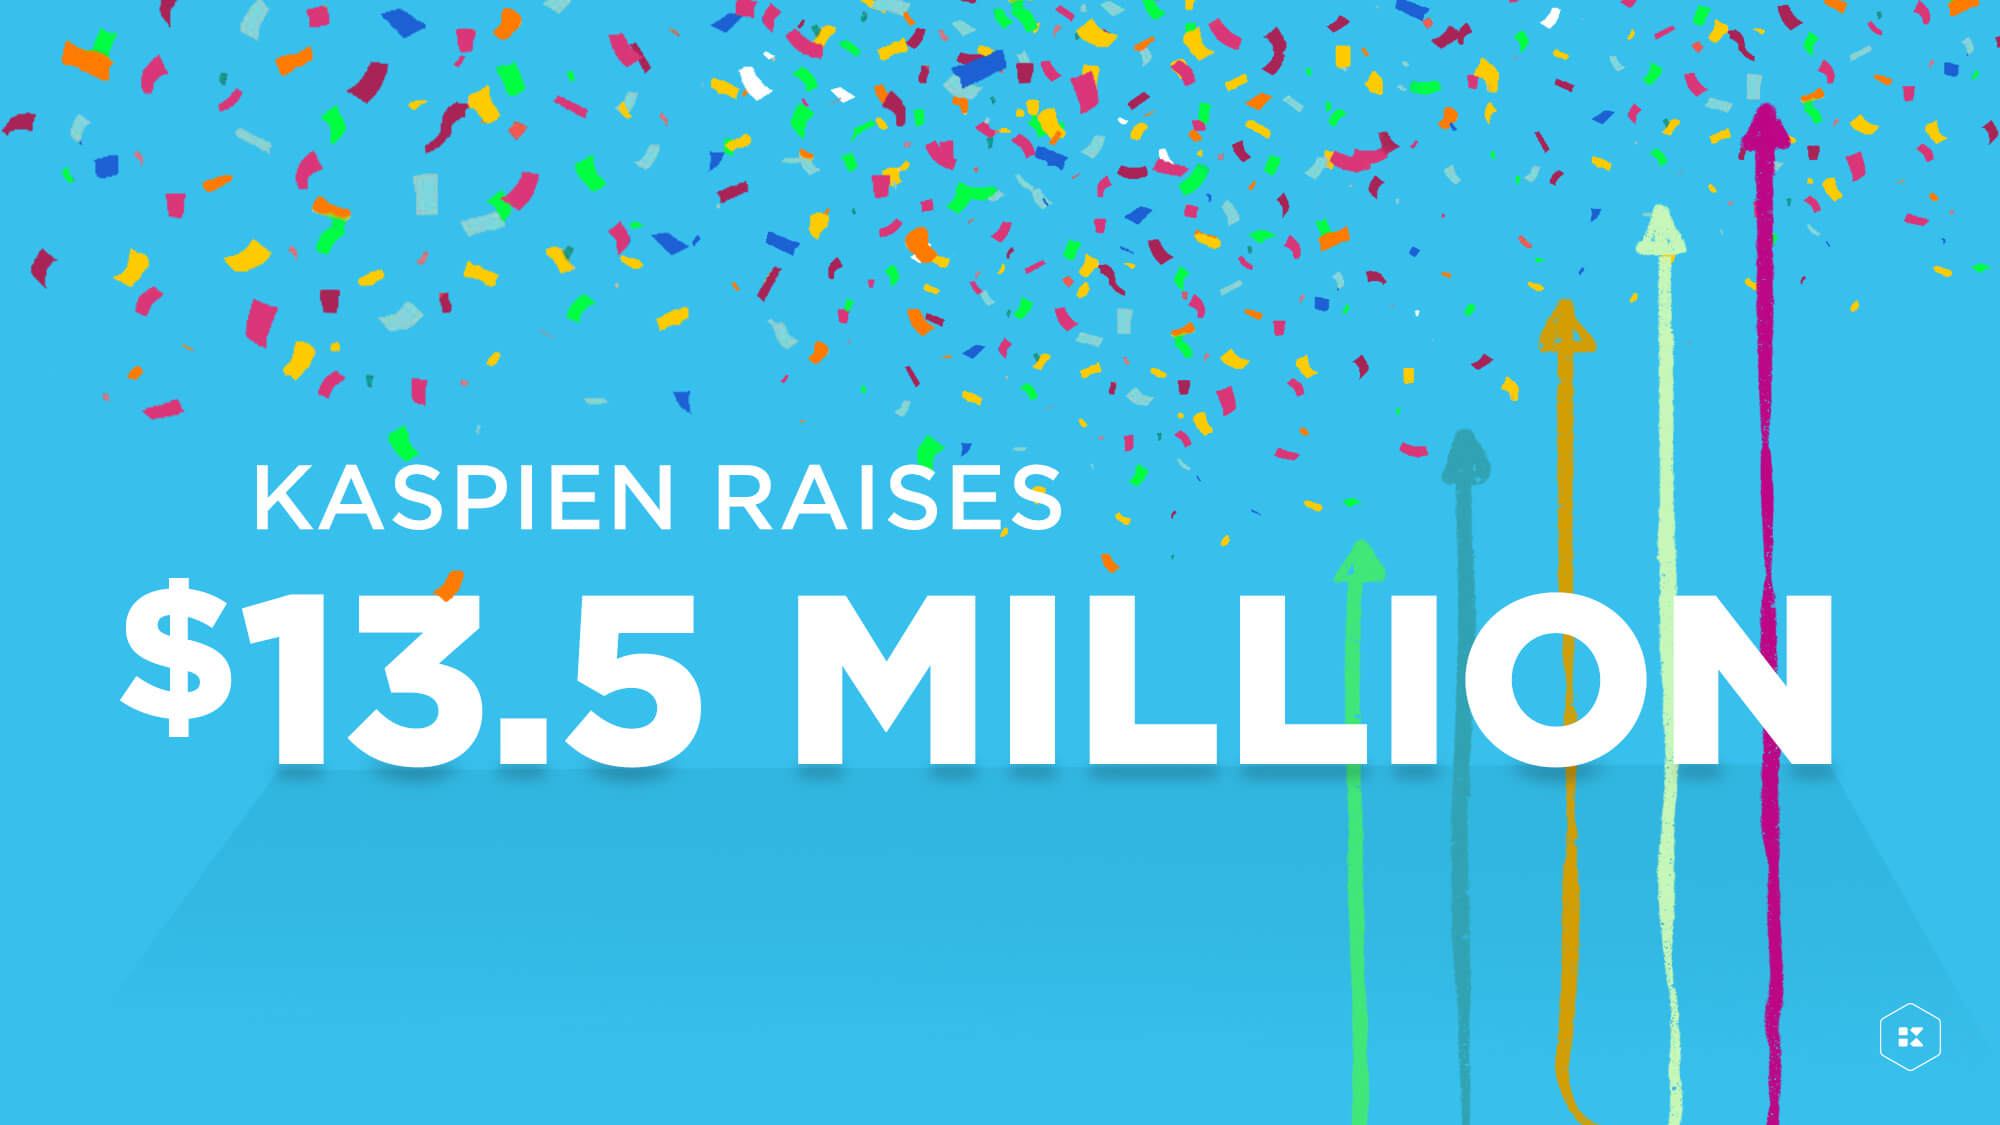 Kaspien Raises $13.5MM in Equity Funding!